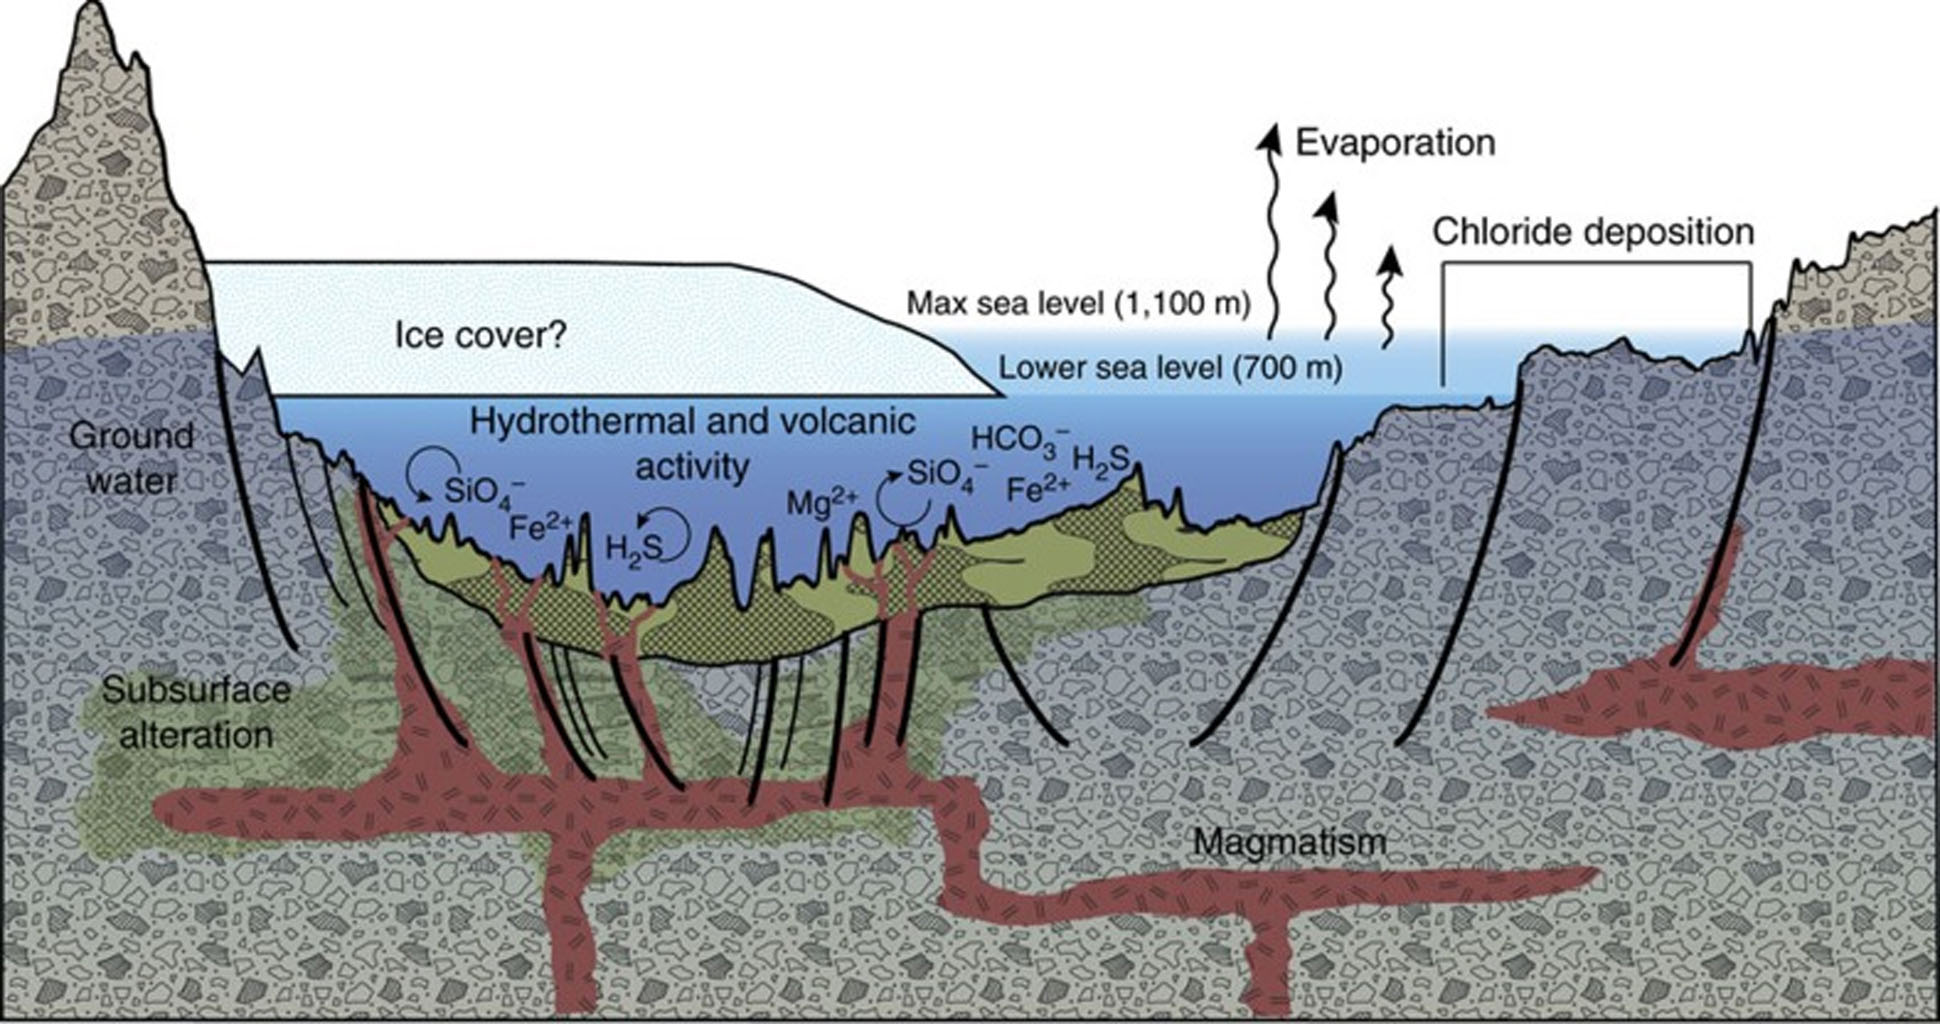 This diagram illustrates an interpretation for the origin of some deposits in the Eridania basin of southern Mars as resulting from seafloor hydrothermal activity more than 3 billion years ago.